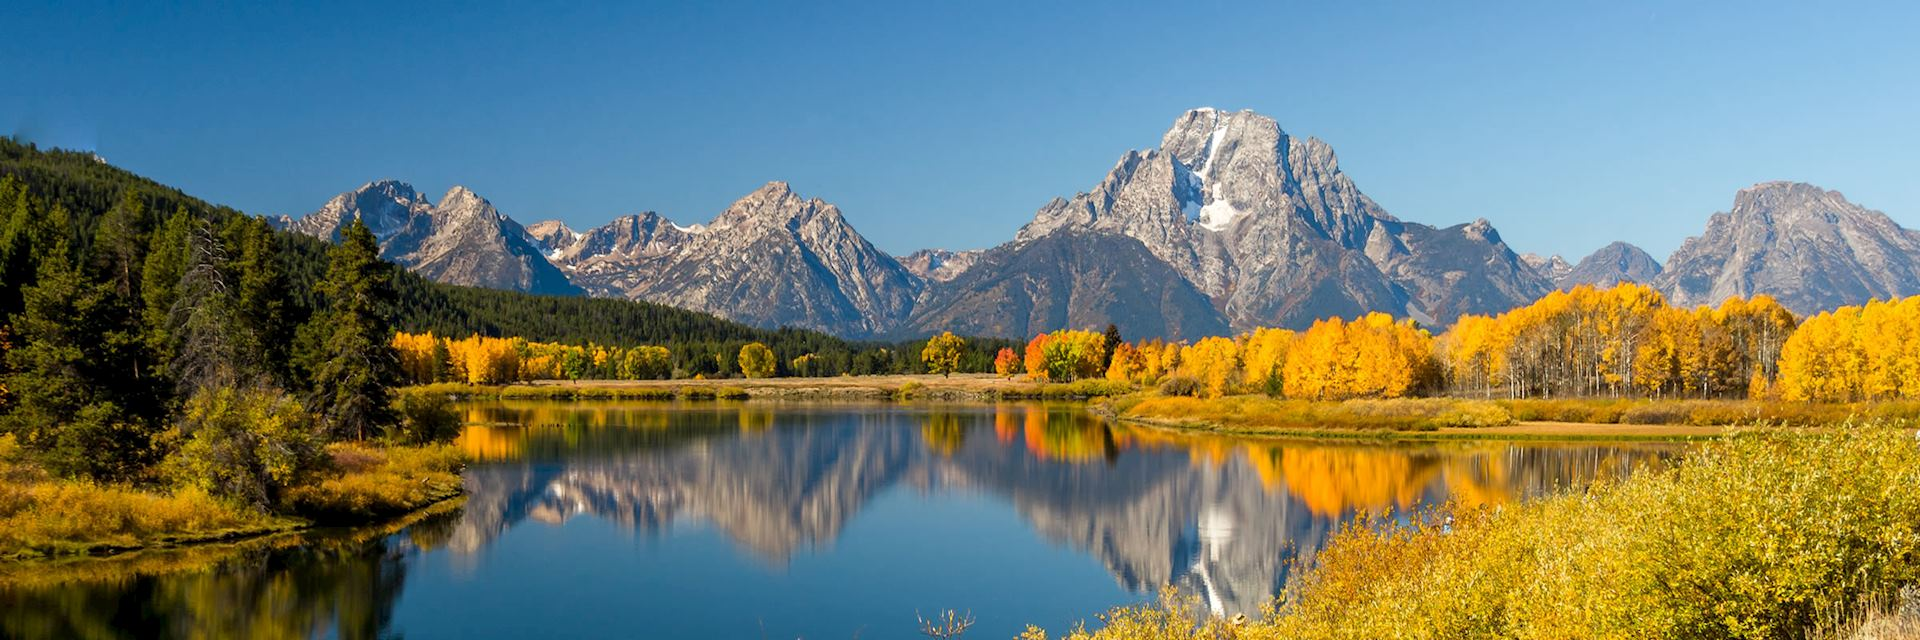 Mount Moran in Colorado